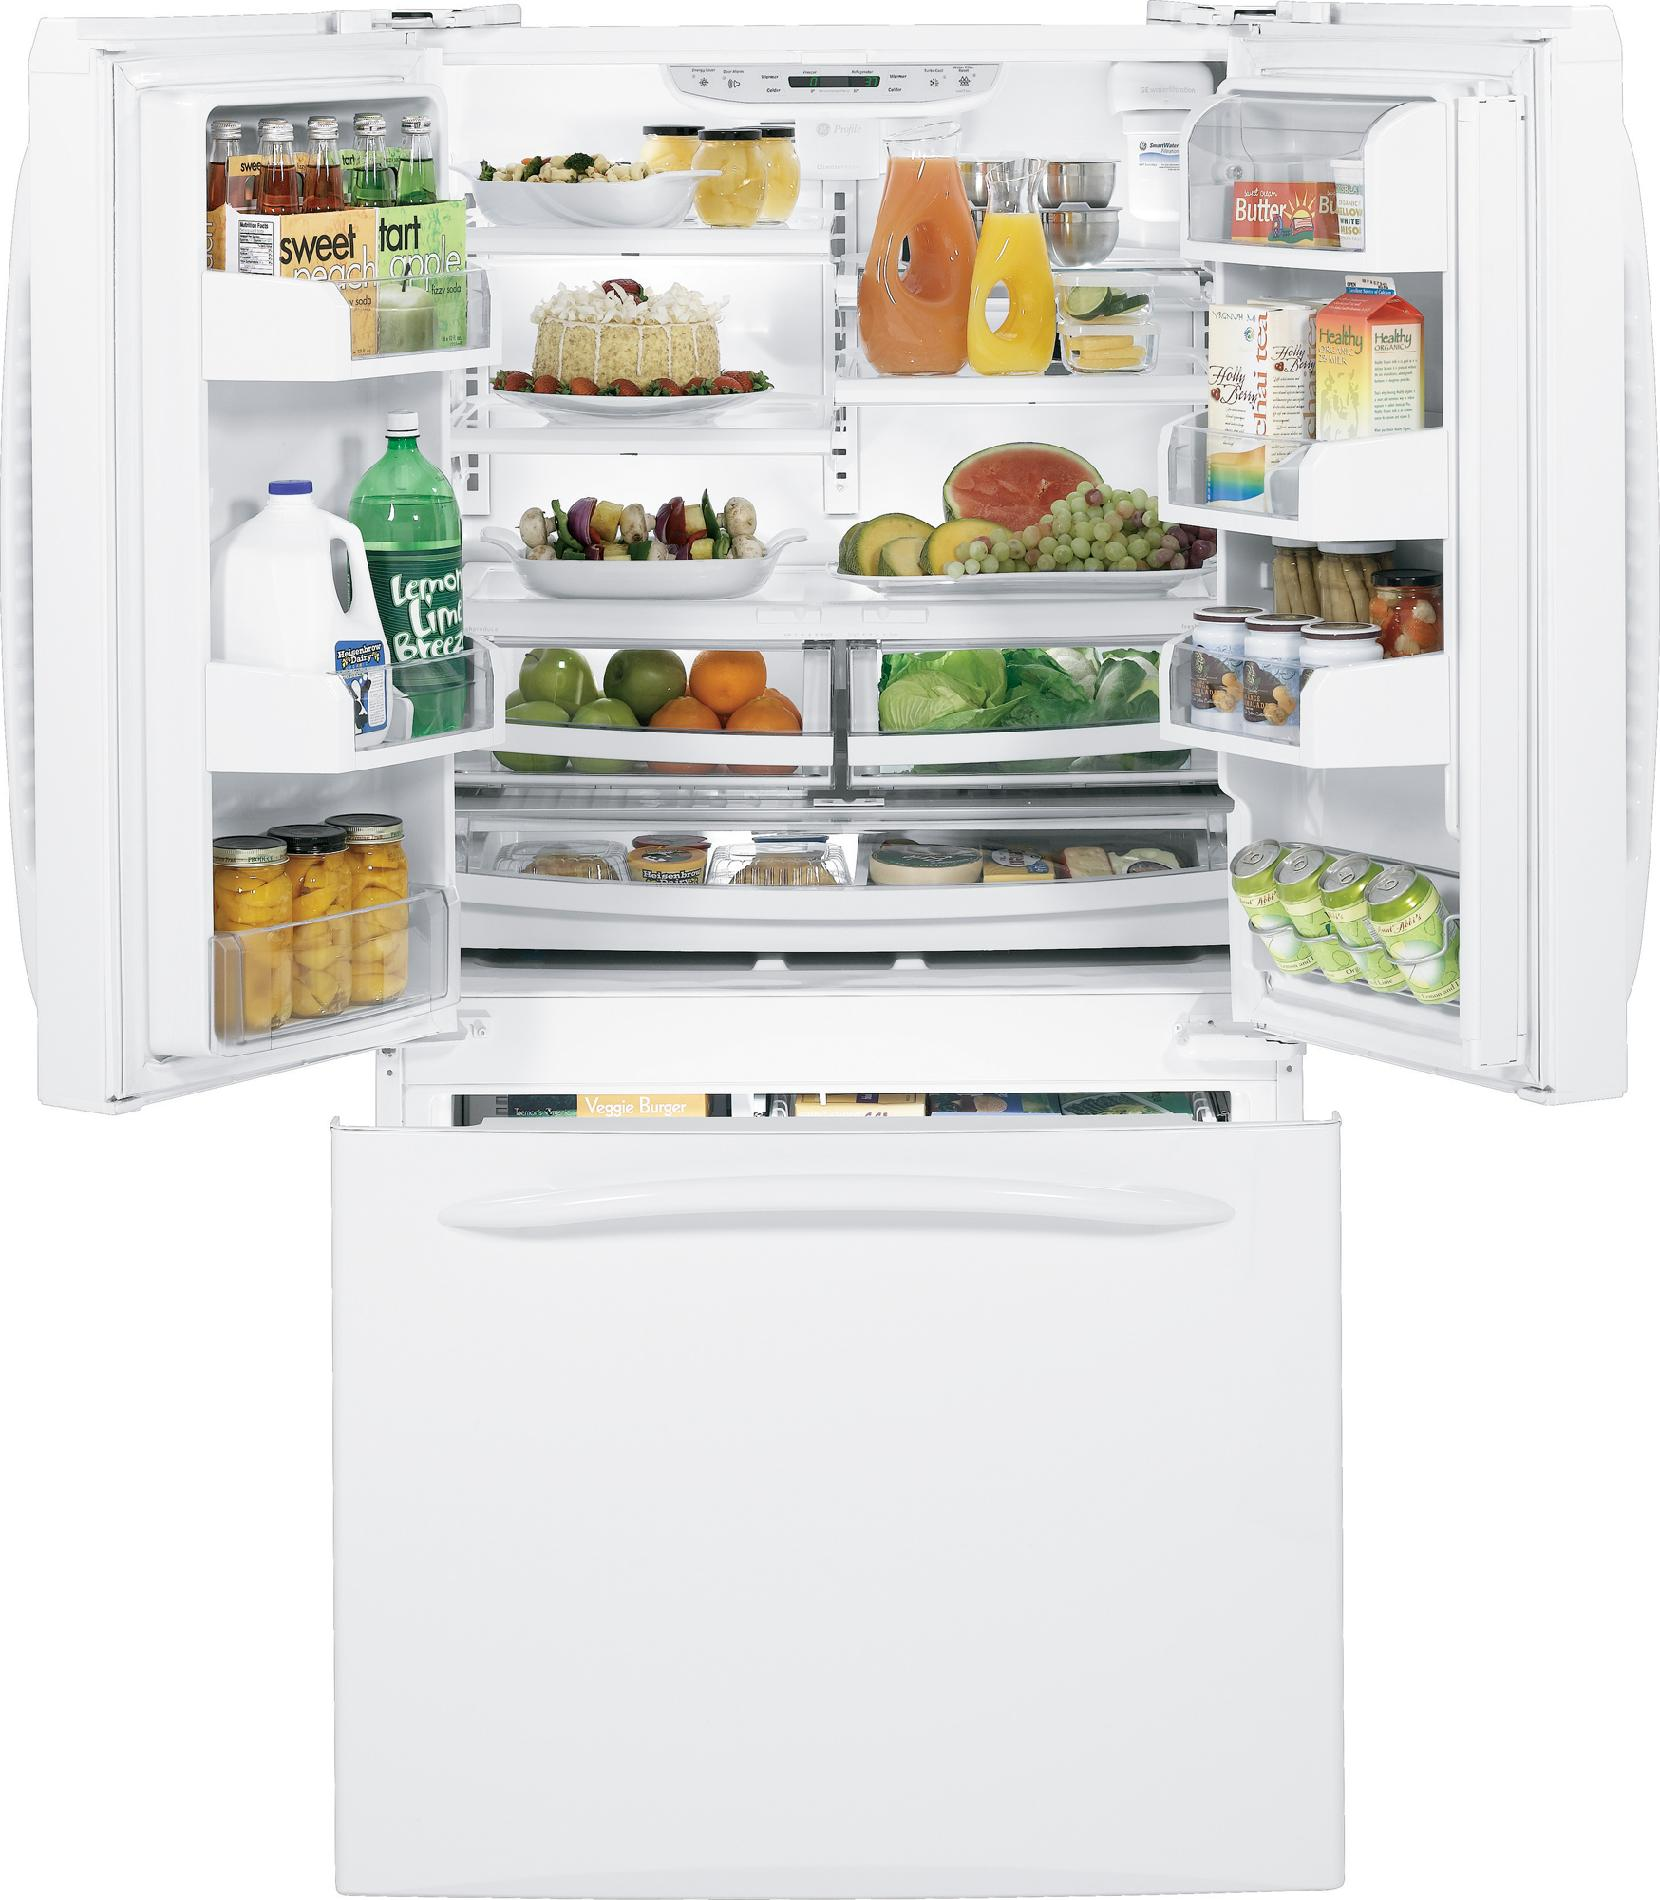 GE Profile 20.7 cu. ft. Counter-Depth French Door Refrigerator - White